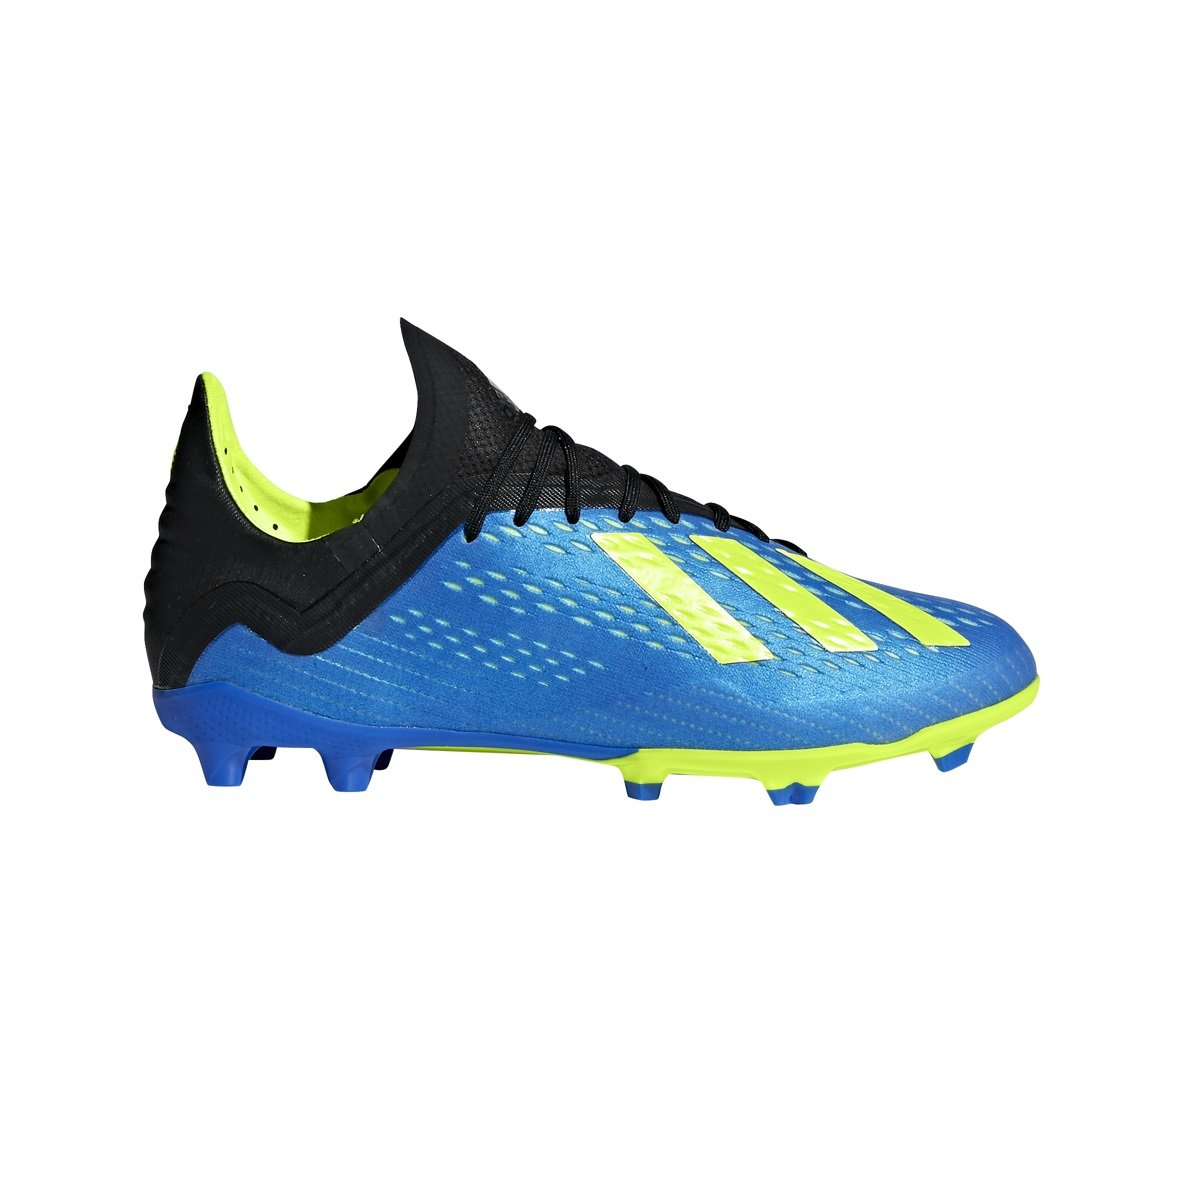 brand new 69d4a 620f6 Amazon.com  adidas X 18.1 Youth FG Soccer Cleats  Shoes